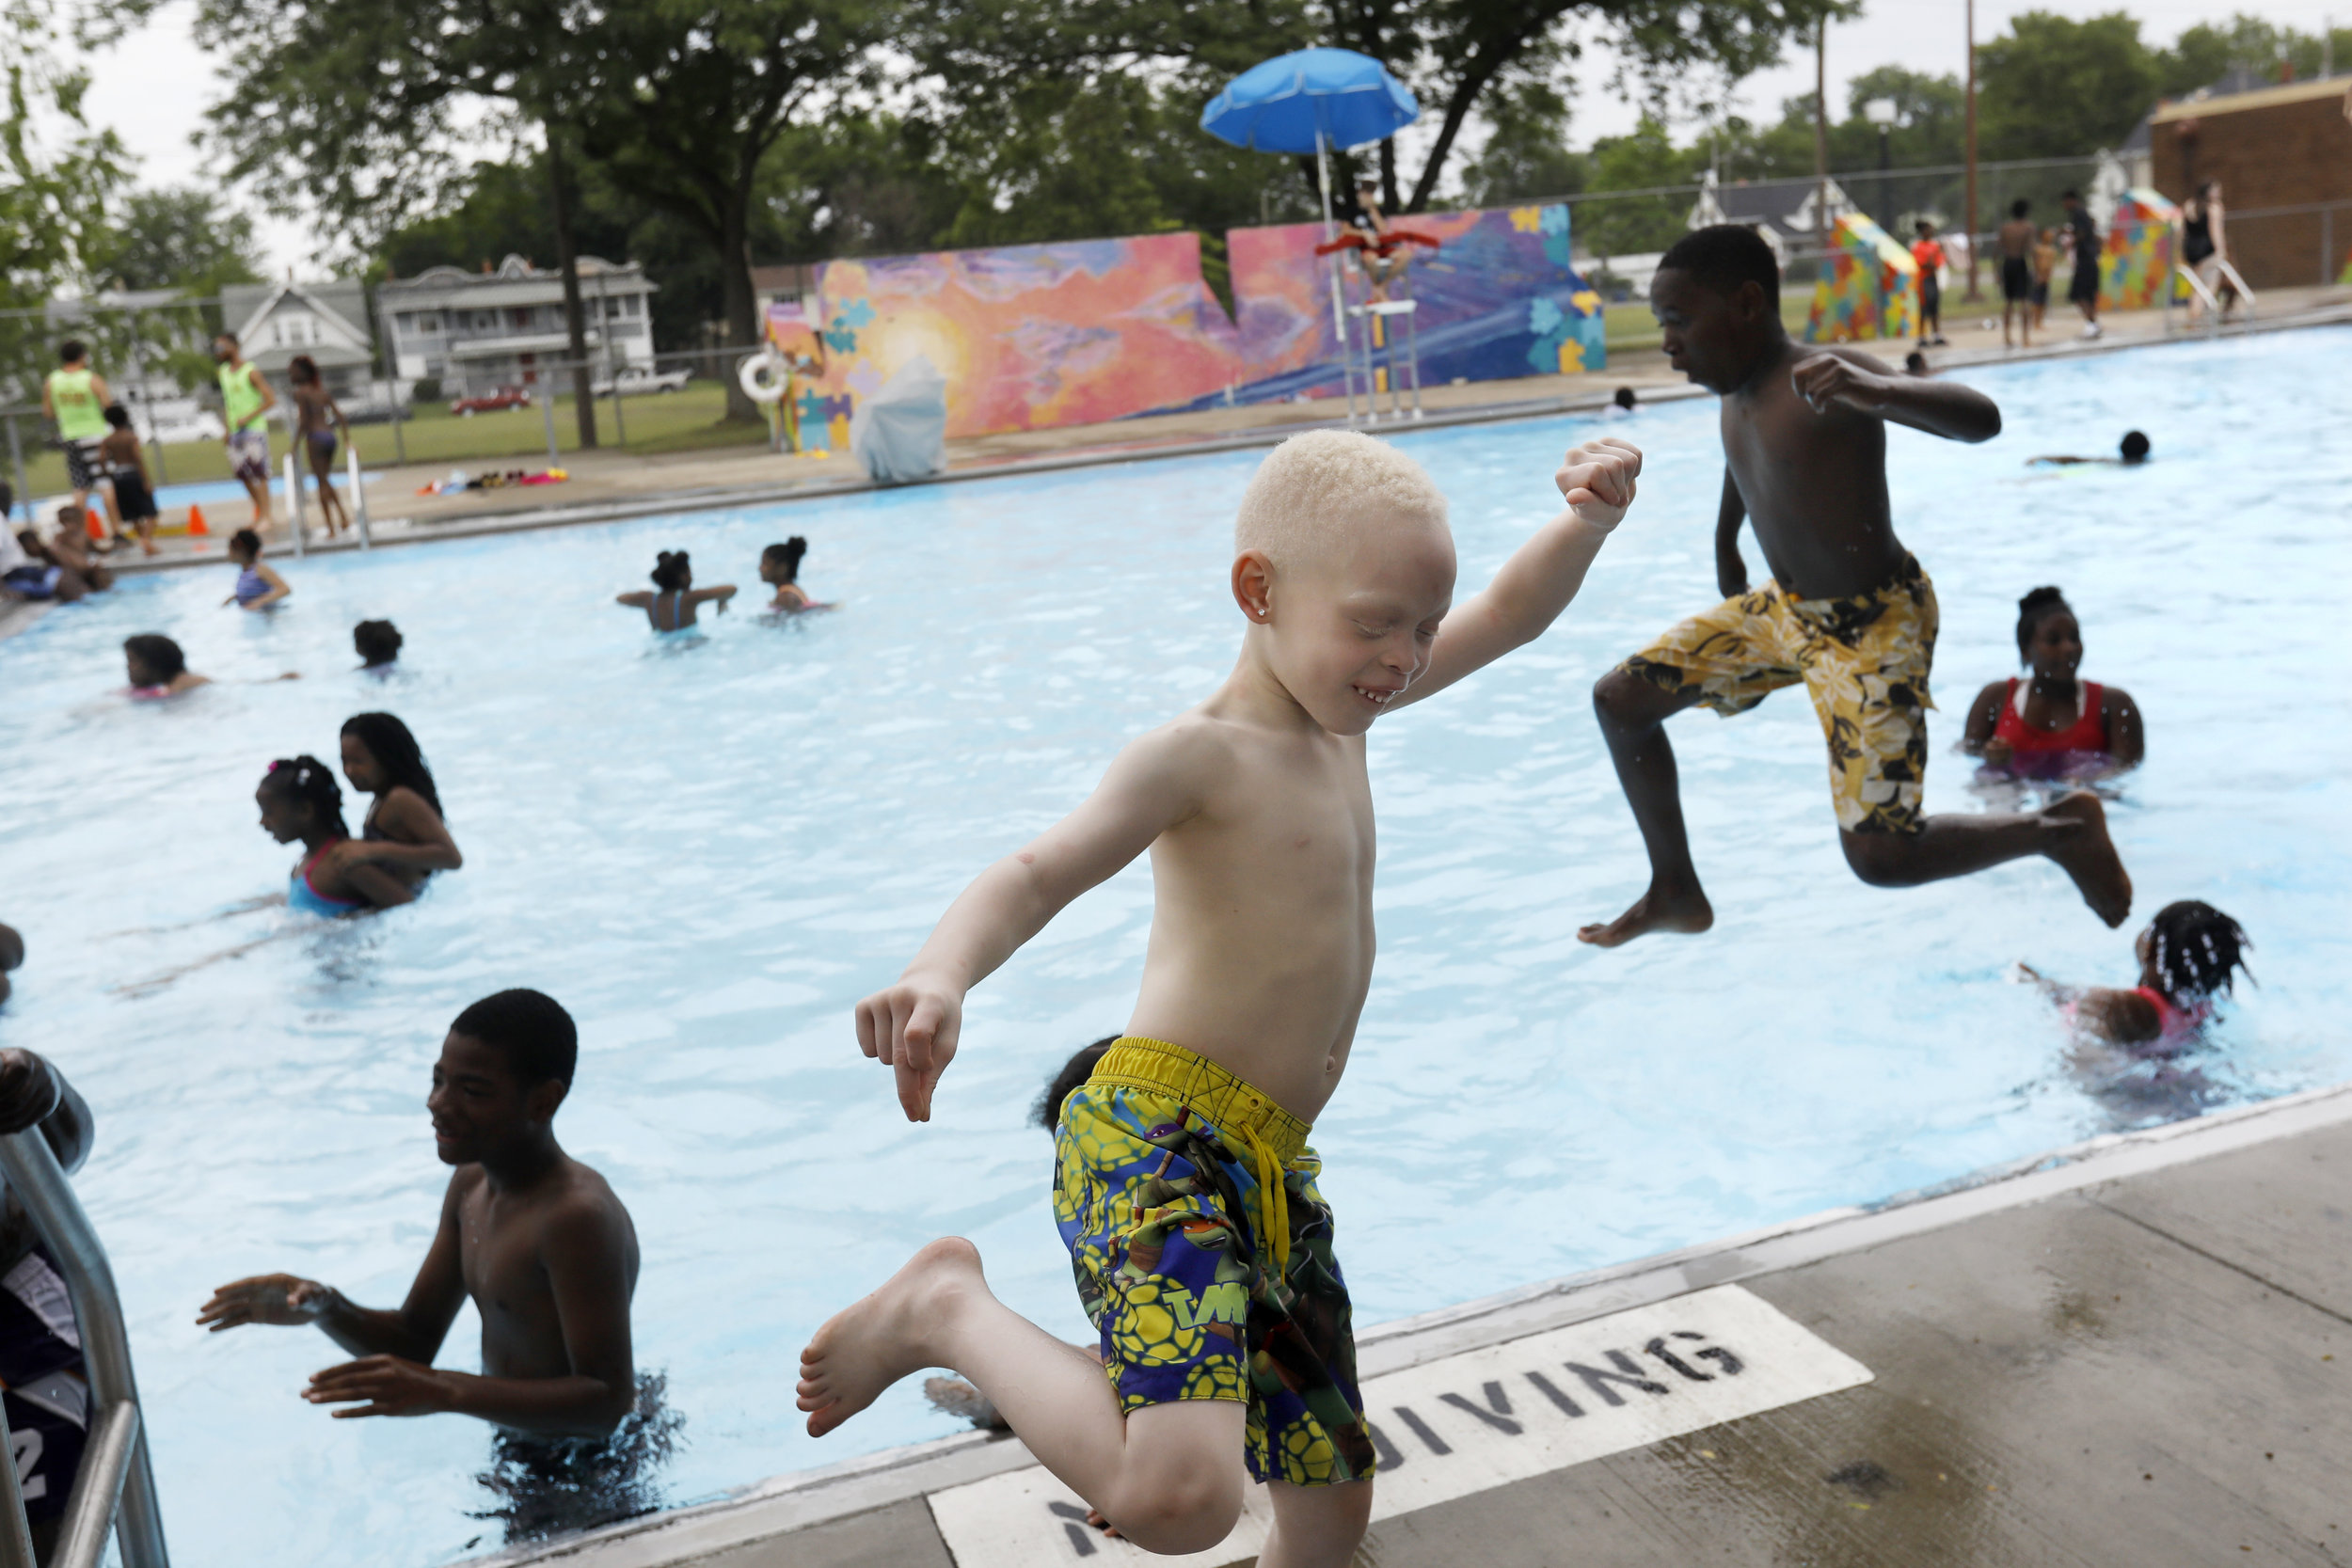 Karmero Sims, center, dances to music playing as other children jump into the newly-opened Roosevelt Pool during the seventh annual Smith Fest June 16, 2018, in Smith Park in Toledo. The festival featured horse rides from the Toledo Horsemen Club, a number of sports lessons, the opening of Roosevelt Pool, and a bike give-away.